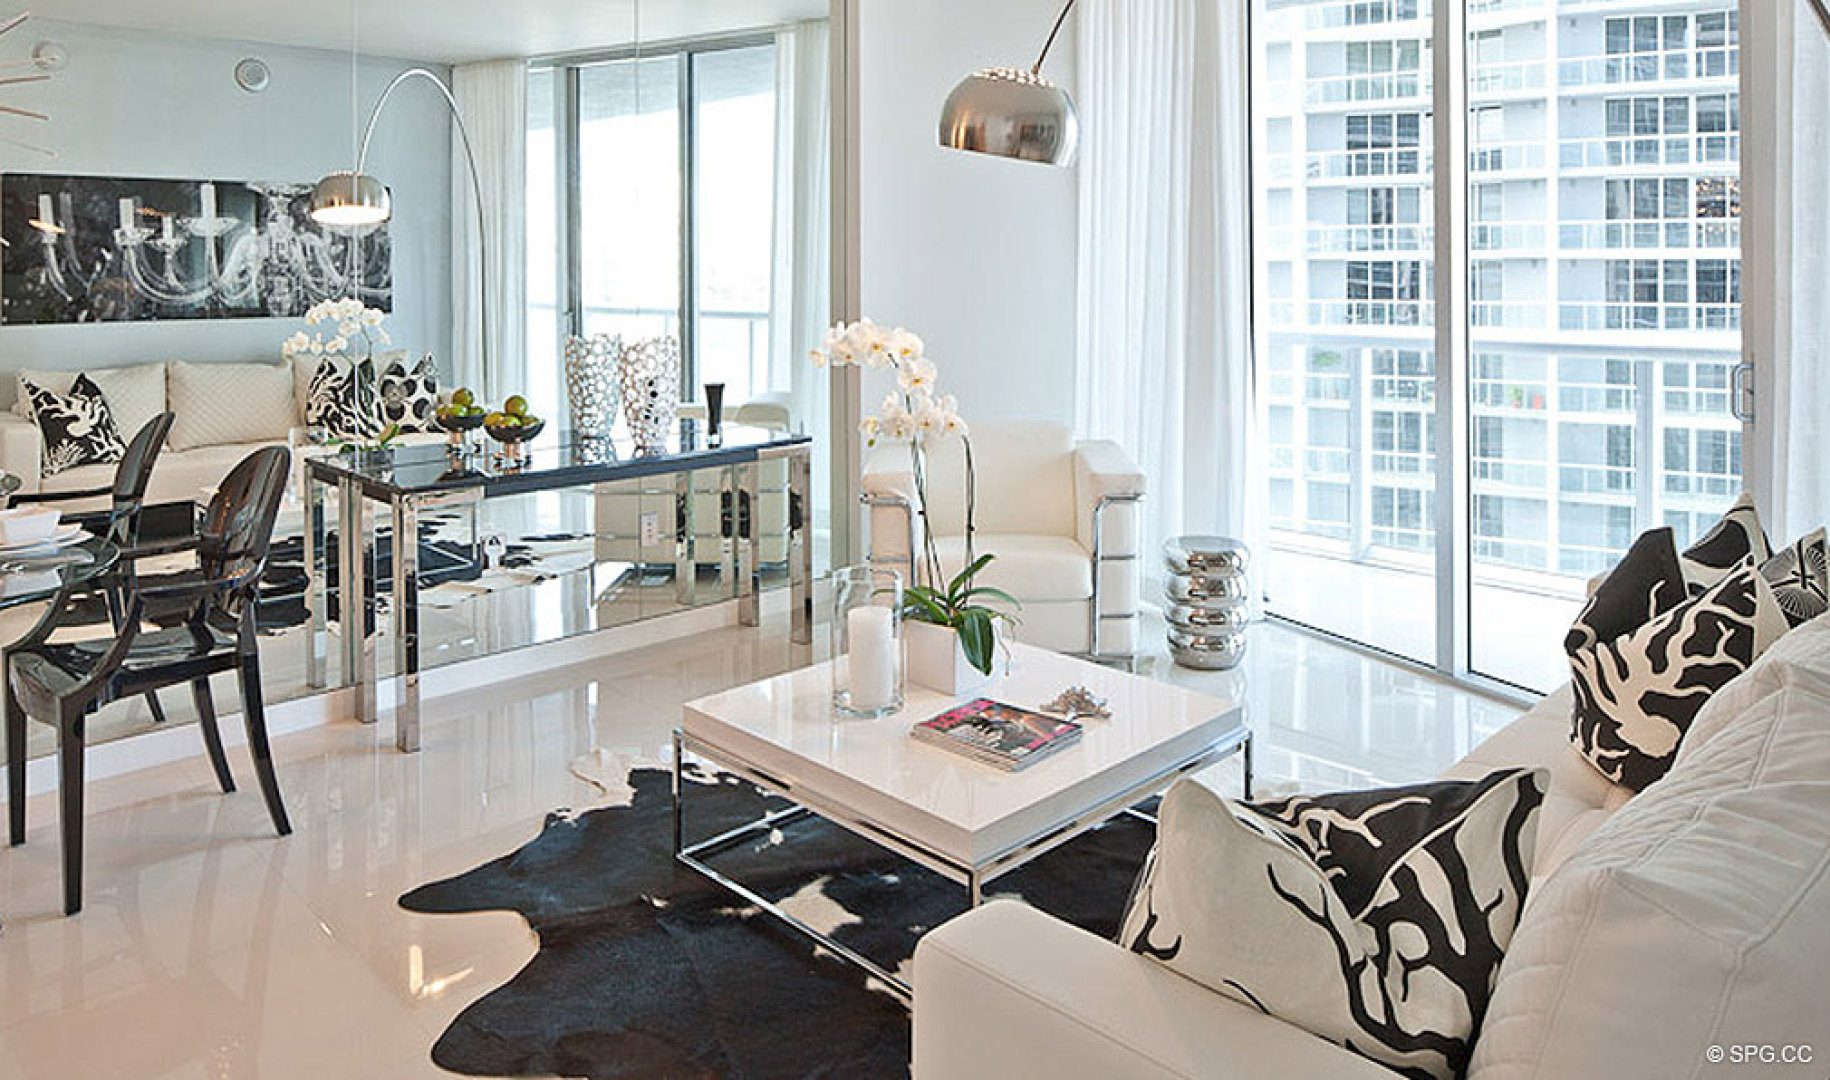 Stylish Design at ICON Brickell, Luxury Waterfront Condominiums Located at 475 Brickell Ave, Miami, FL 33131